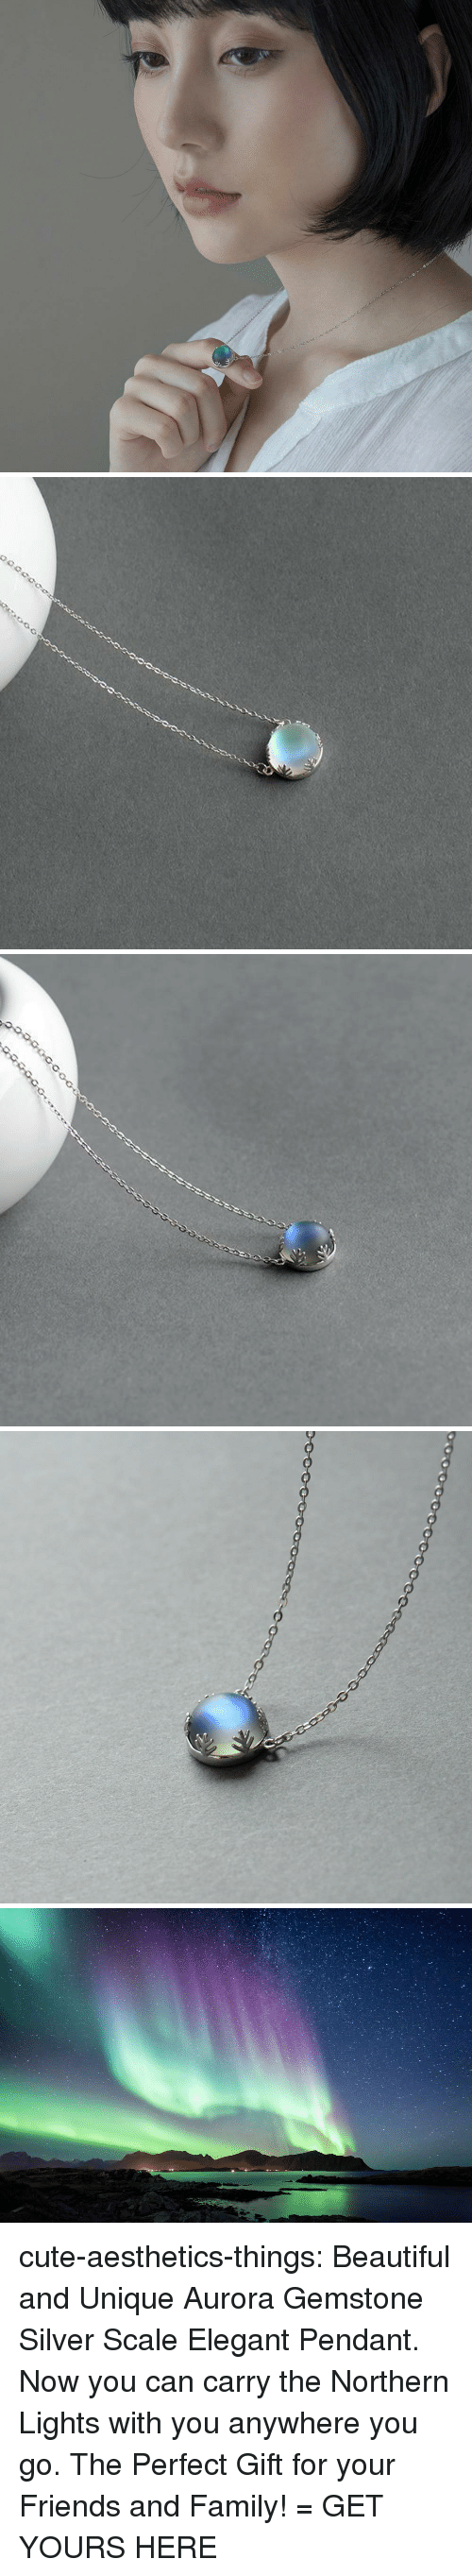 Beautiful, Cute, and Family: cute-aesthetics-things: Beautiful and Unique Aurora Gemstone Silver Scale Elegant Pendant. Now you can carry the Northern Lights with you anywhere you go. The Perfect Gift for your Friends and Family! = GET YOURS HERE